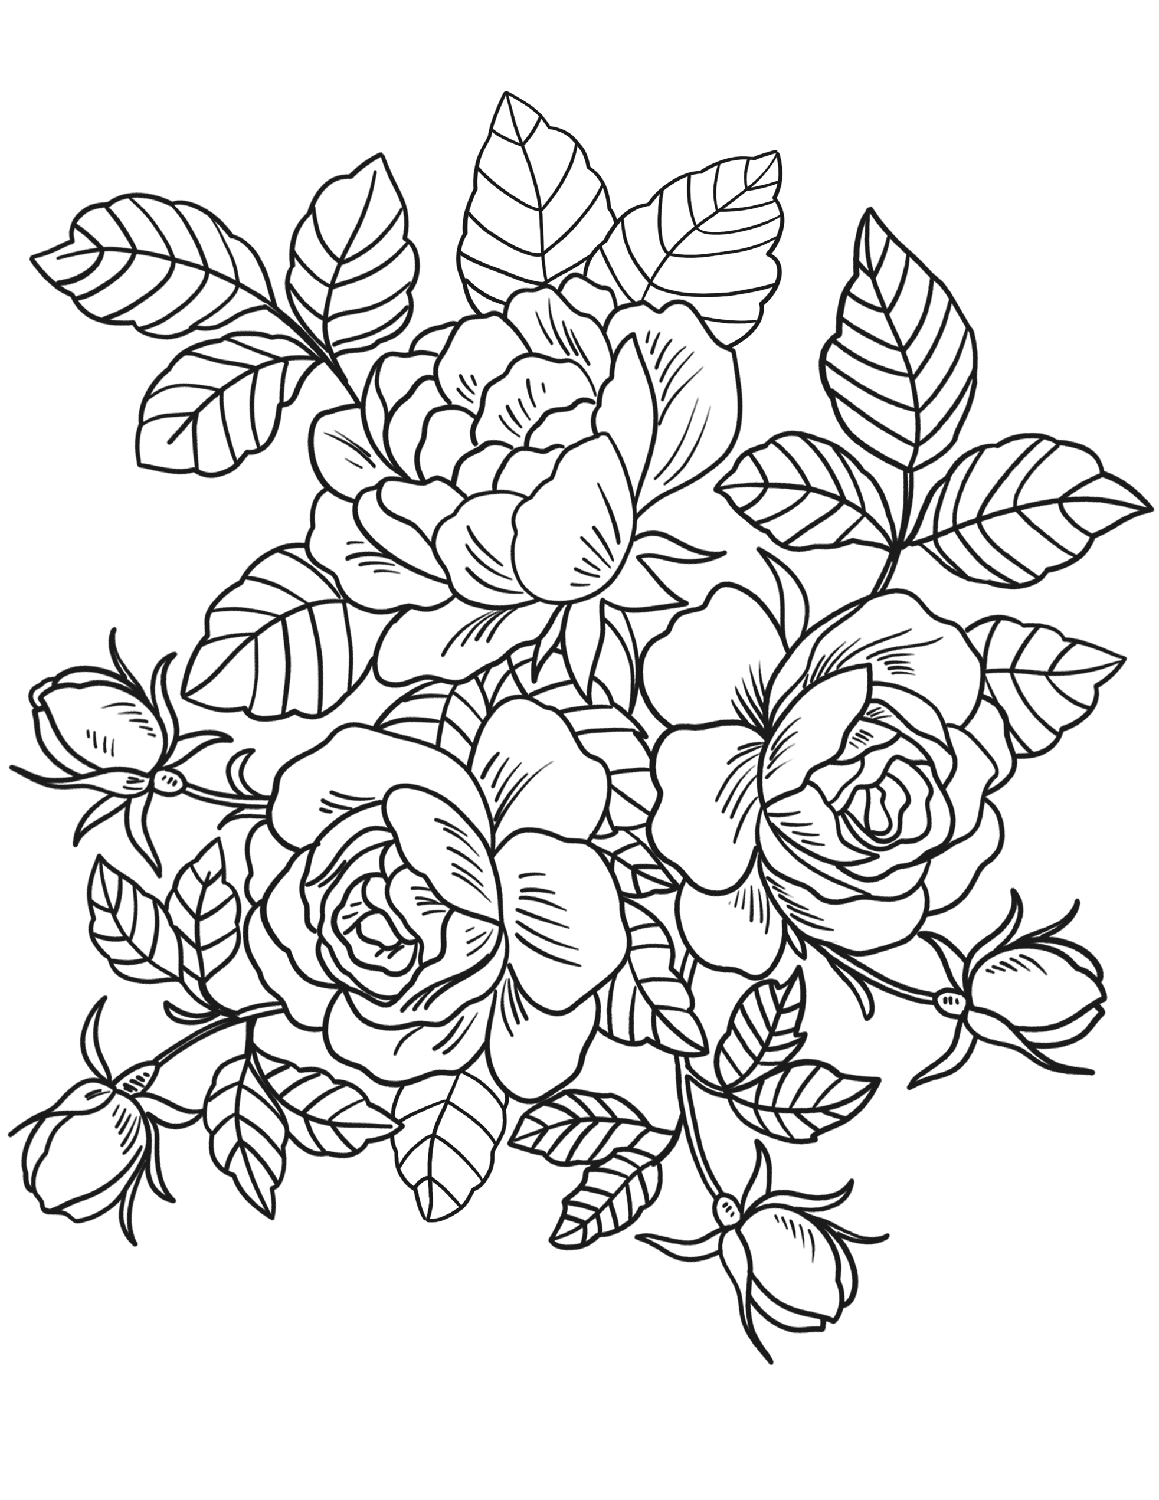 flower pattern coloring pages flowers and vegetation coloring pages for adults flower coloring pattern pages